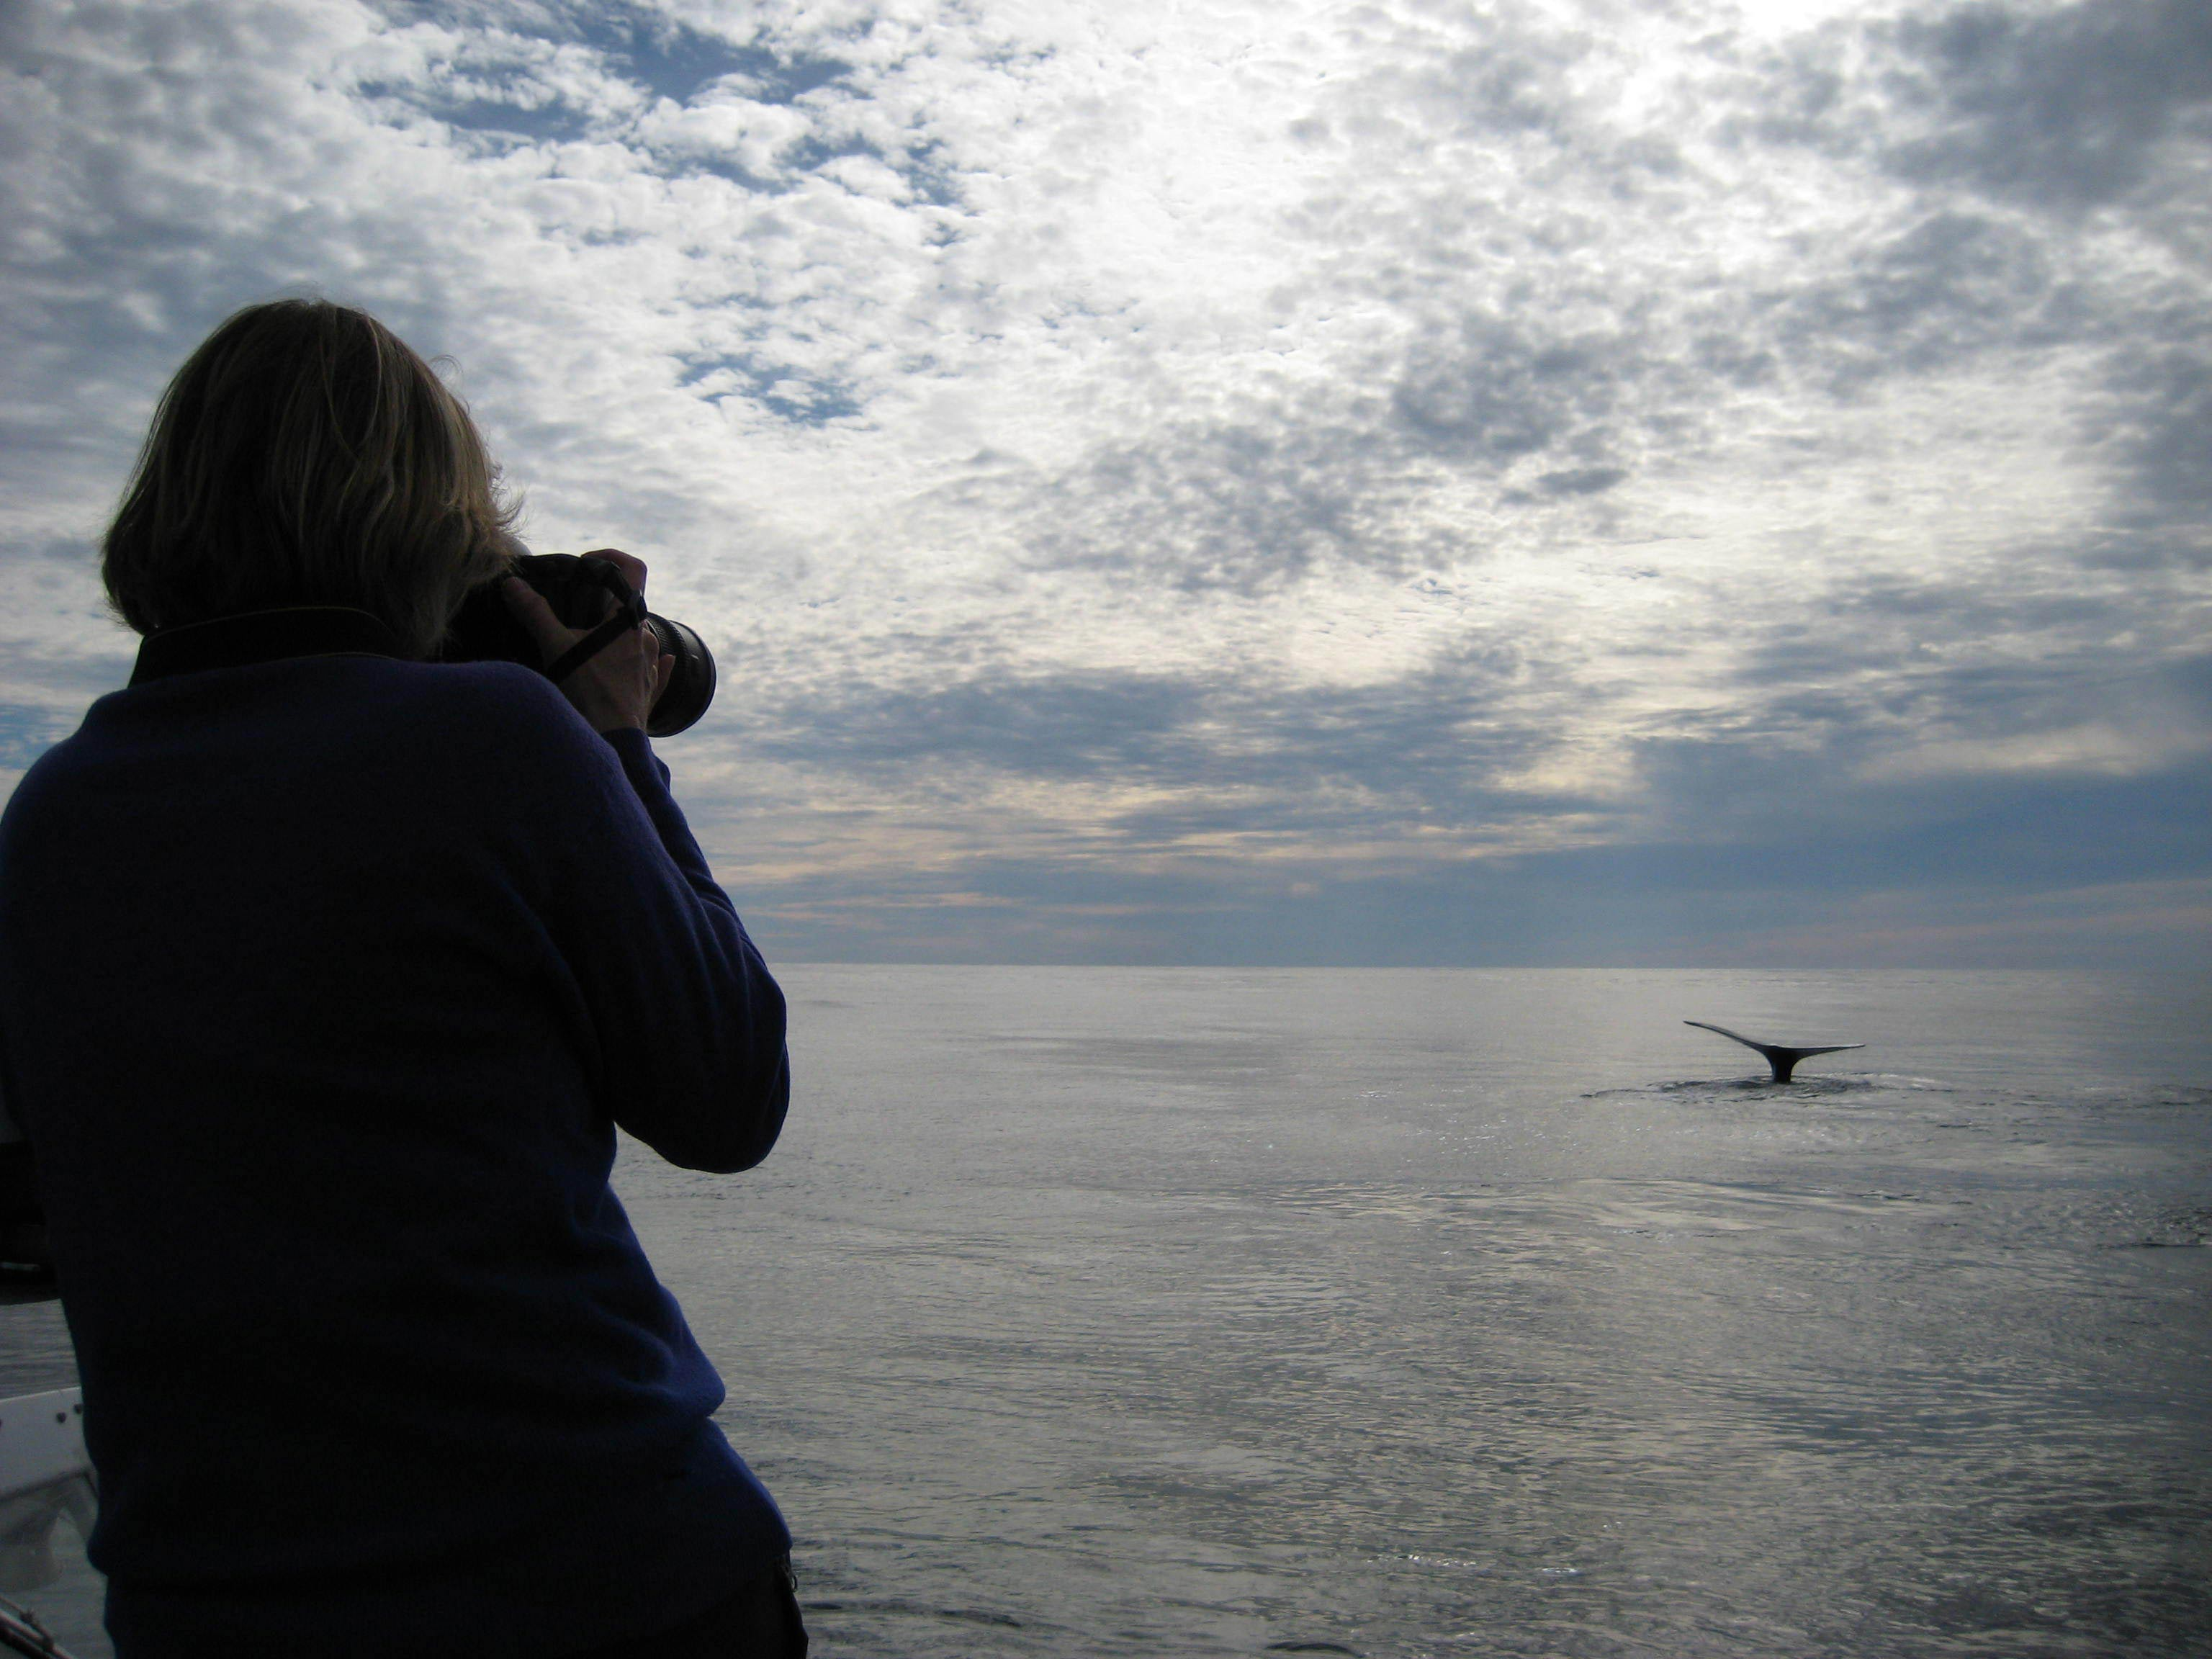 New England Aquarium researcher watching a right whale